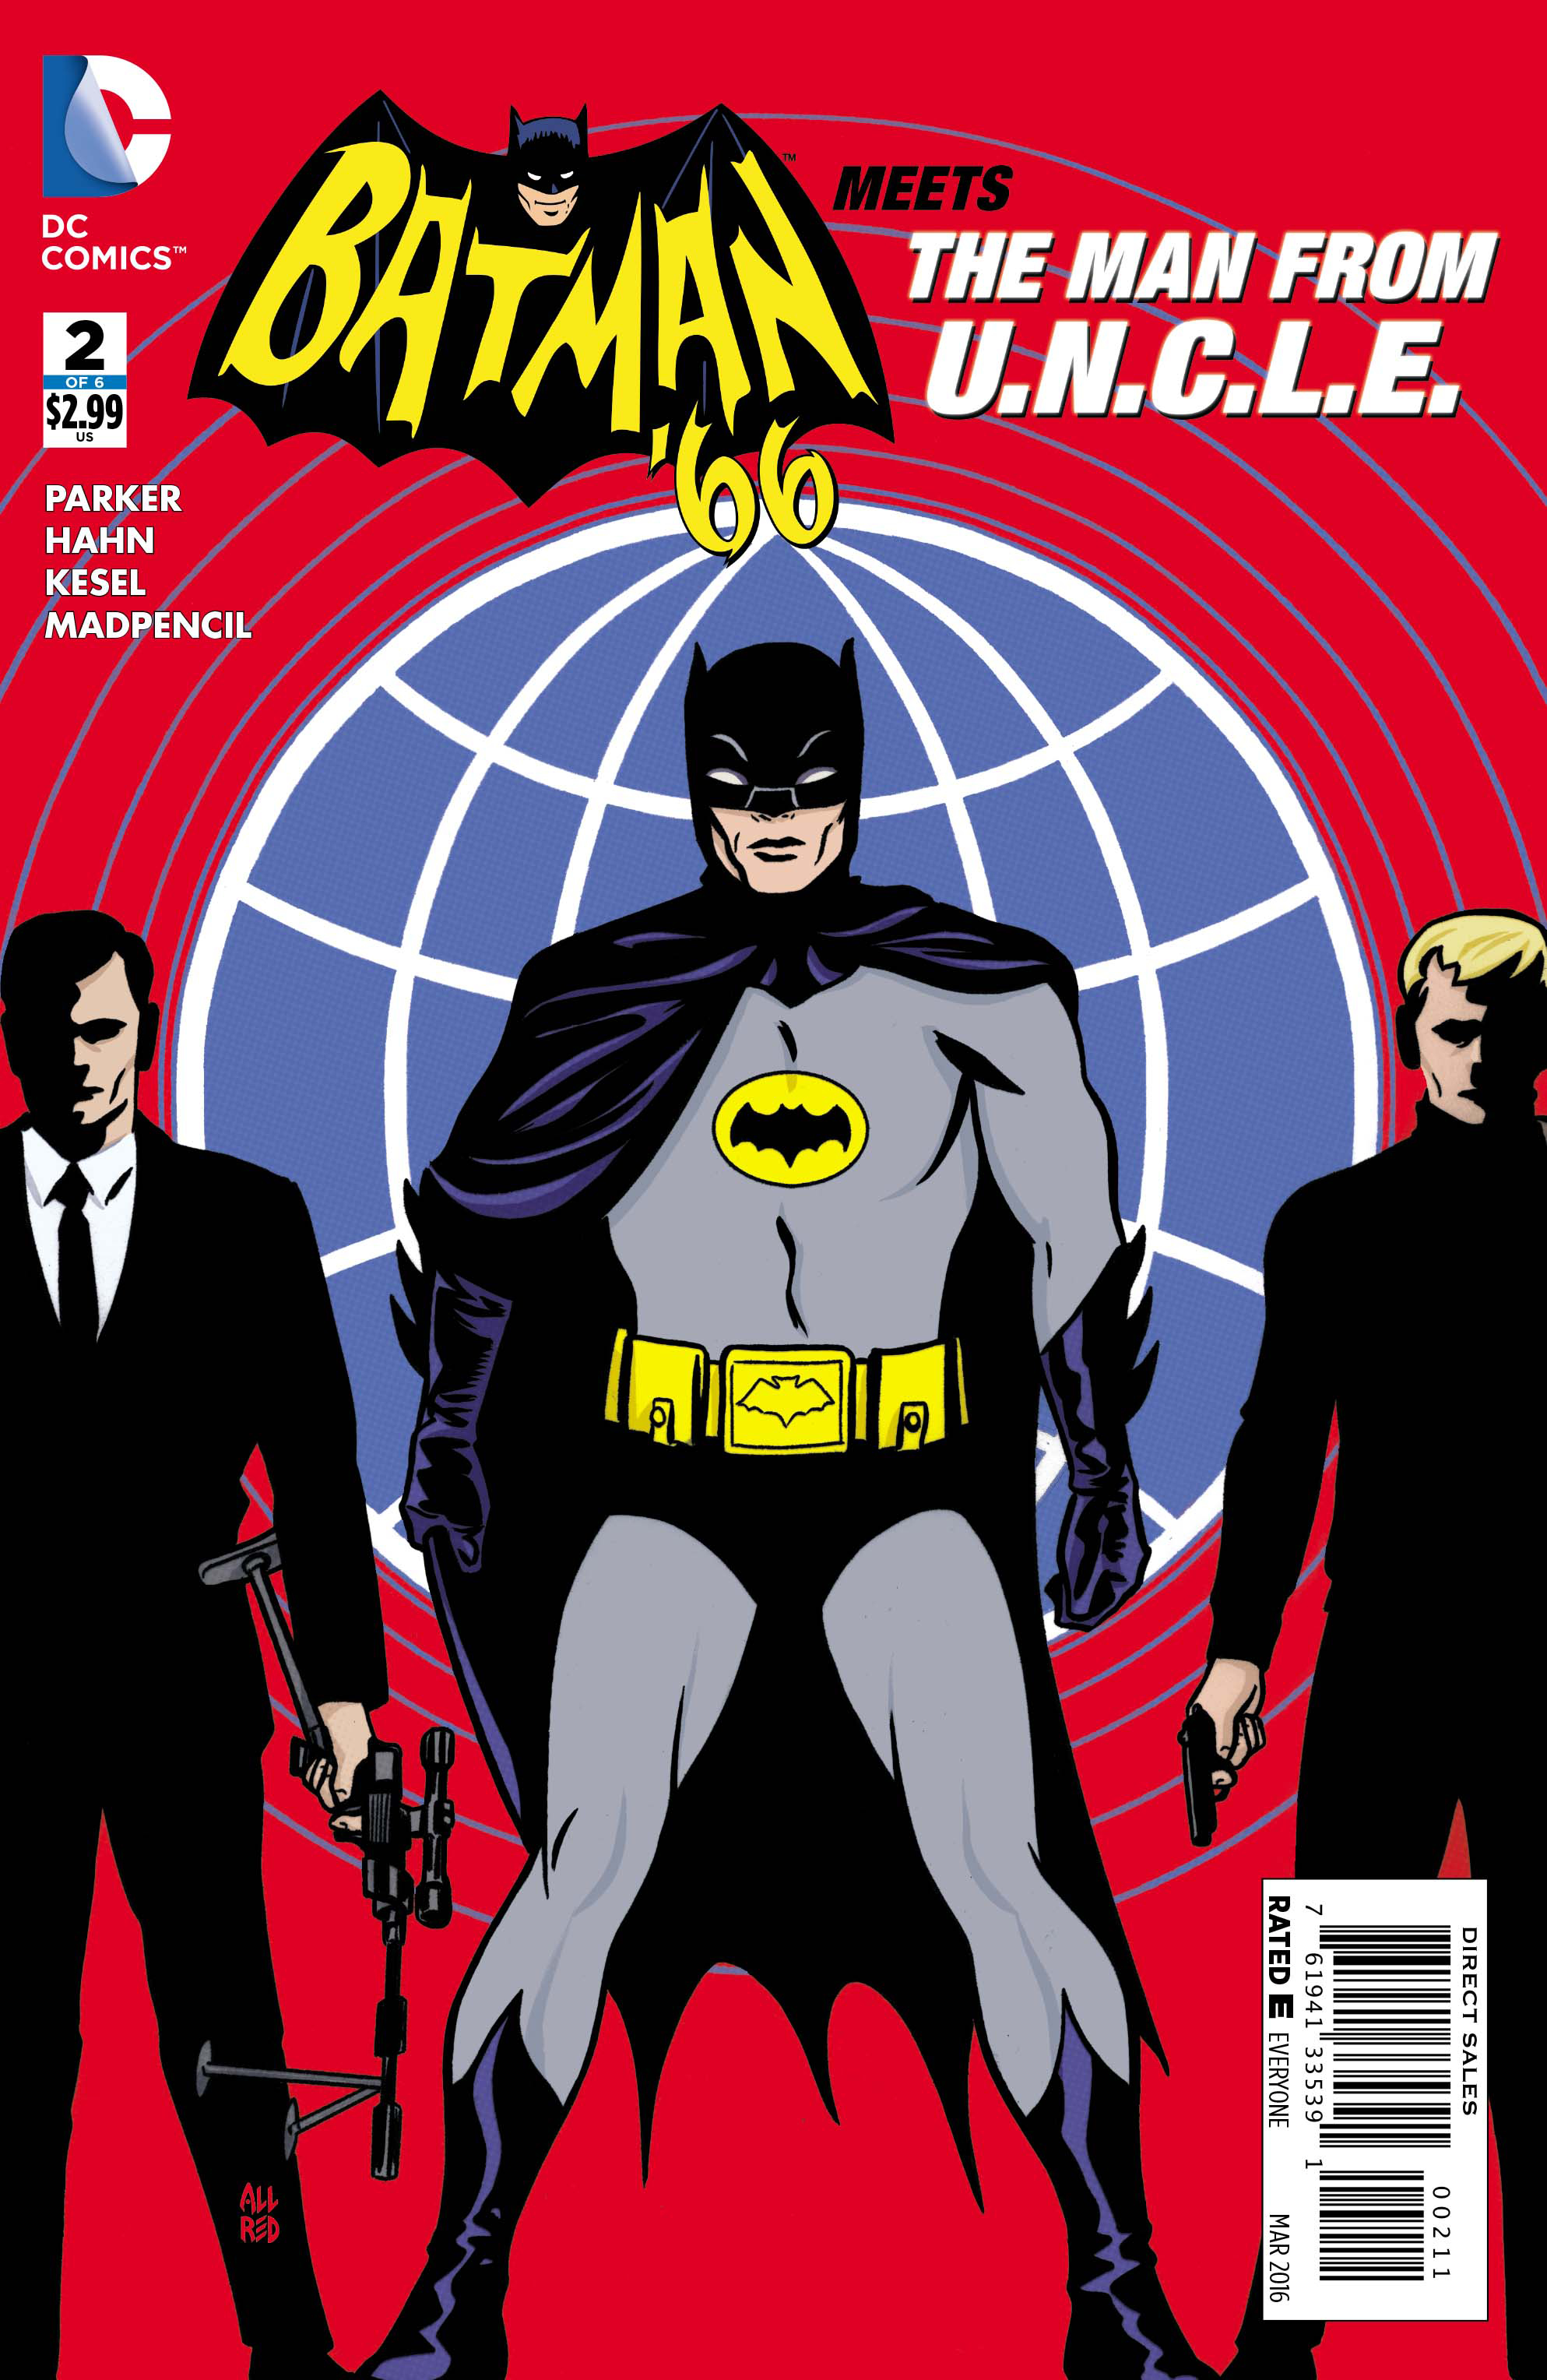 BATMAN 66 MEETS THE MAN FROM UNCLE #2